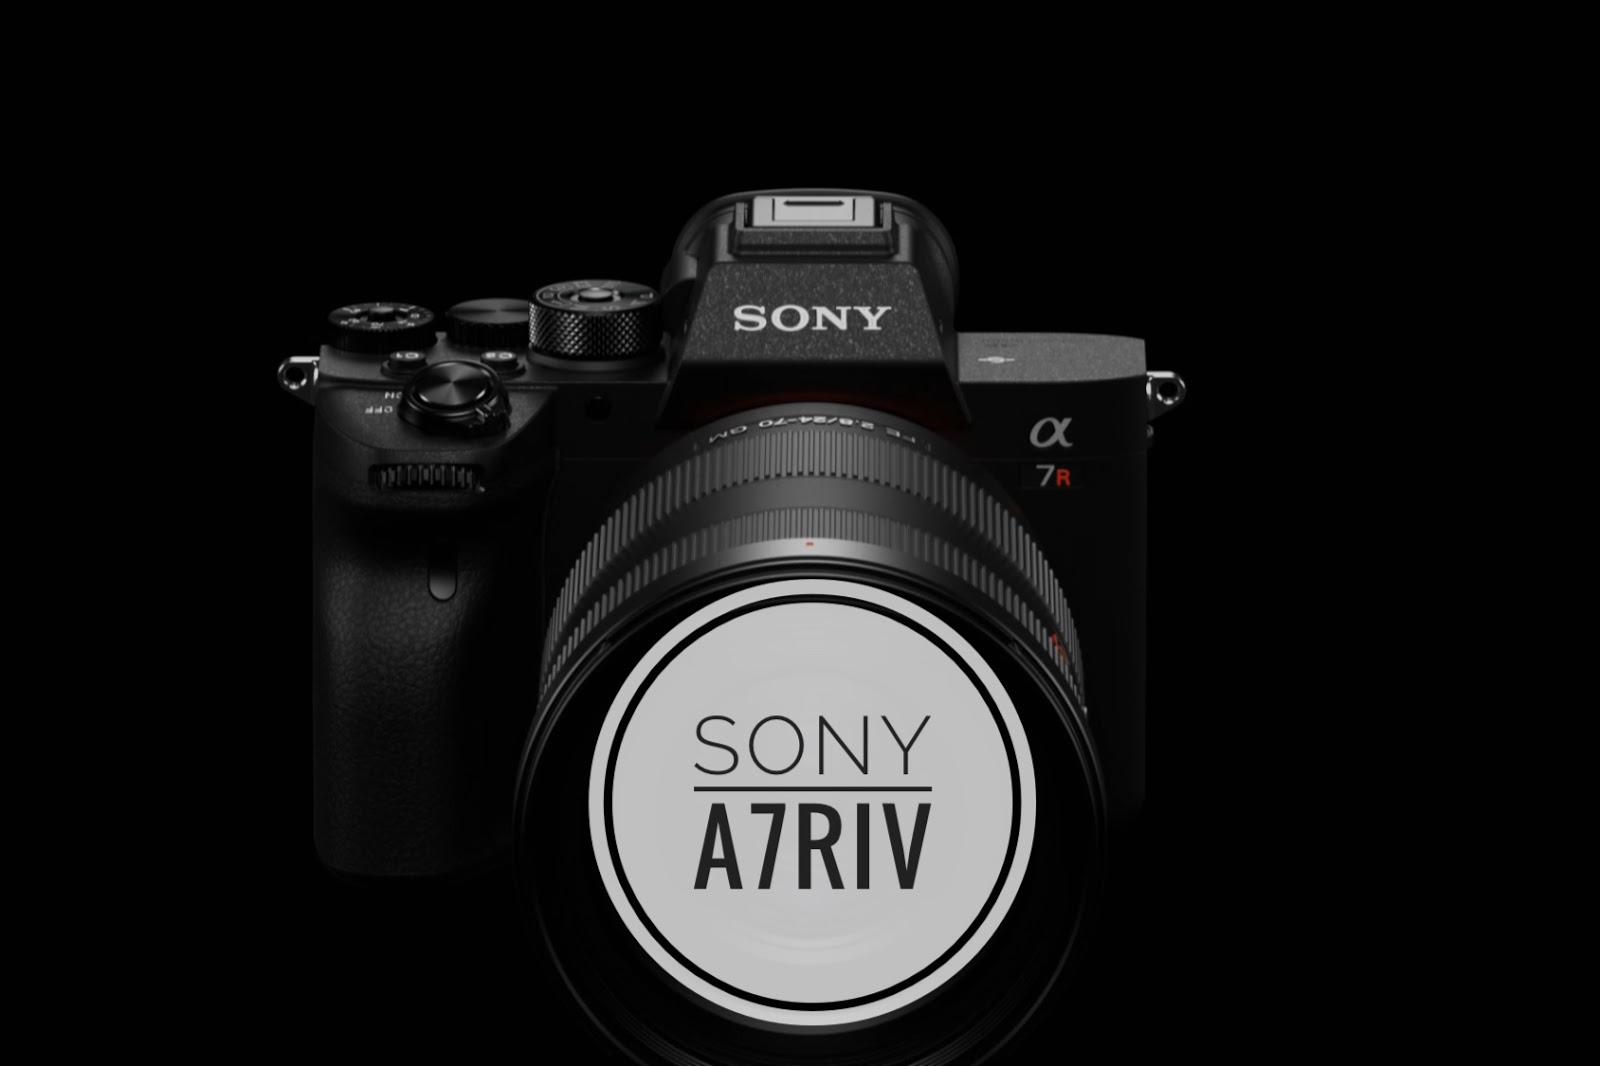 SONY A7RIV : Features and Highlights | The Wacky Duo | Singapore